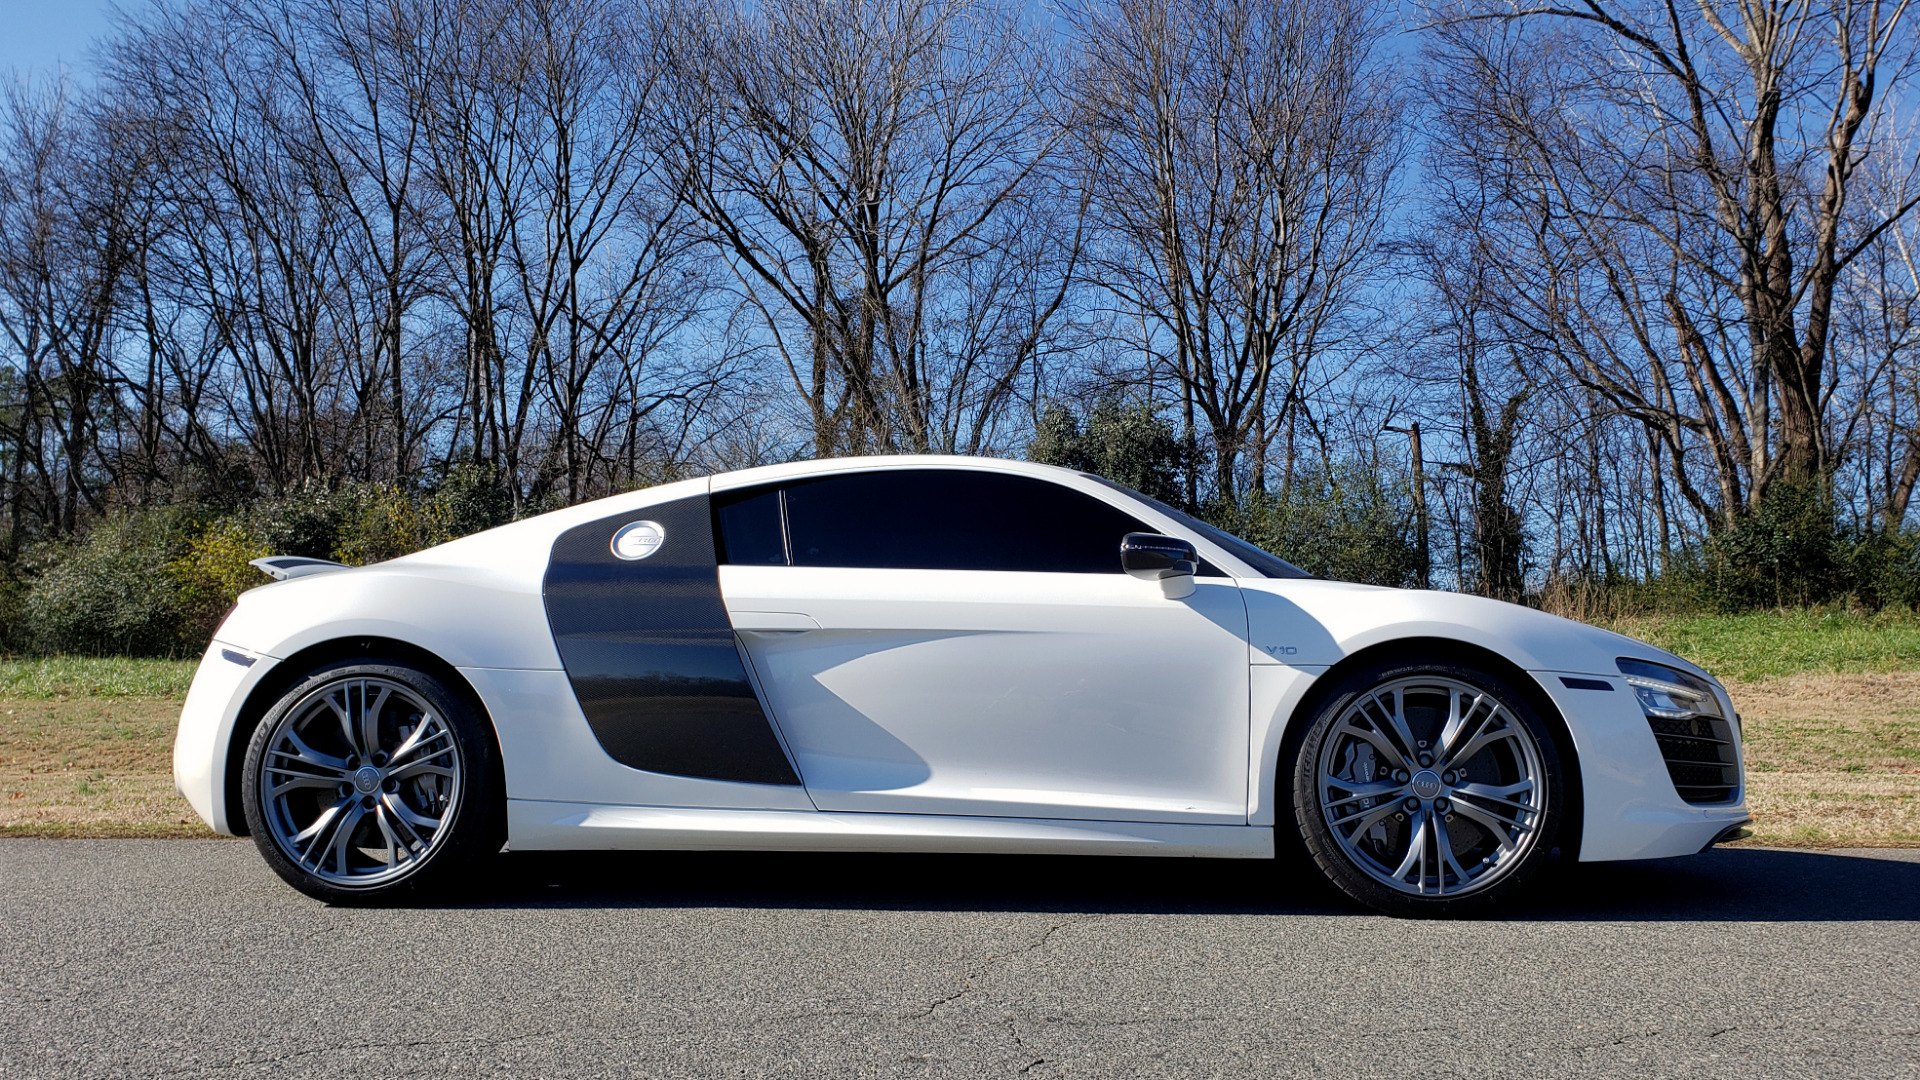 Used 2015 Audi R8 V10 PLUS / S-TRONIC / B&O SOUND / SPORT EXH / REARVIEW for sale Sold at Formula Imports in Charlotte NC 28227 15